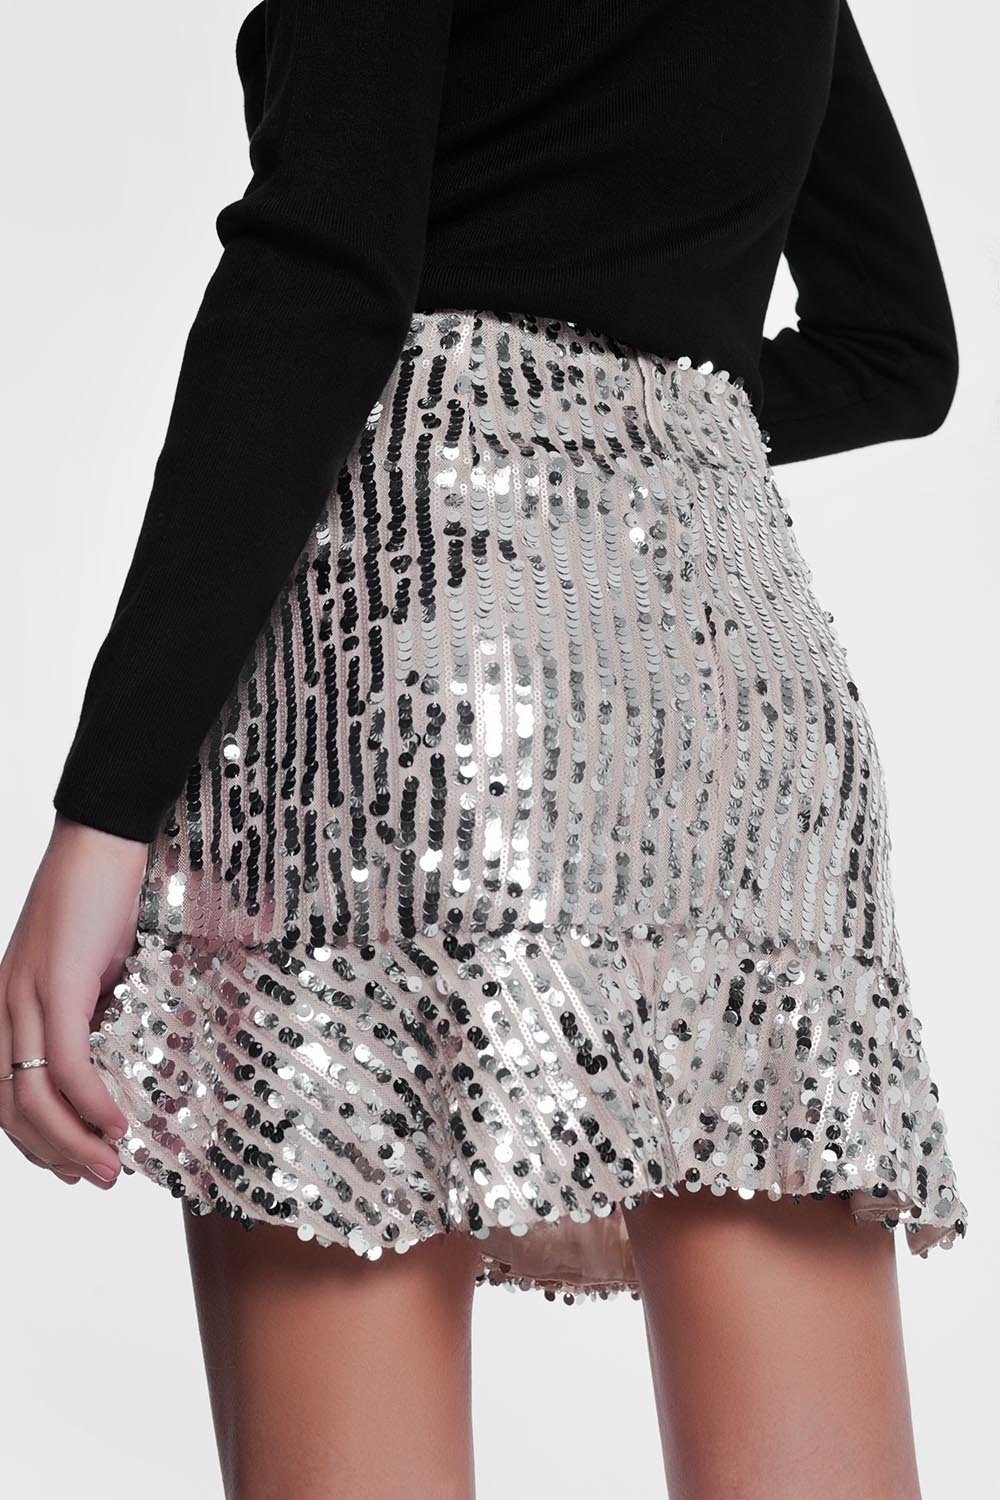 Shiny Gold Skirt - KATANA FASHION BOUTIQUE